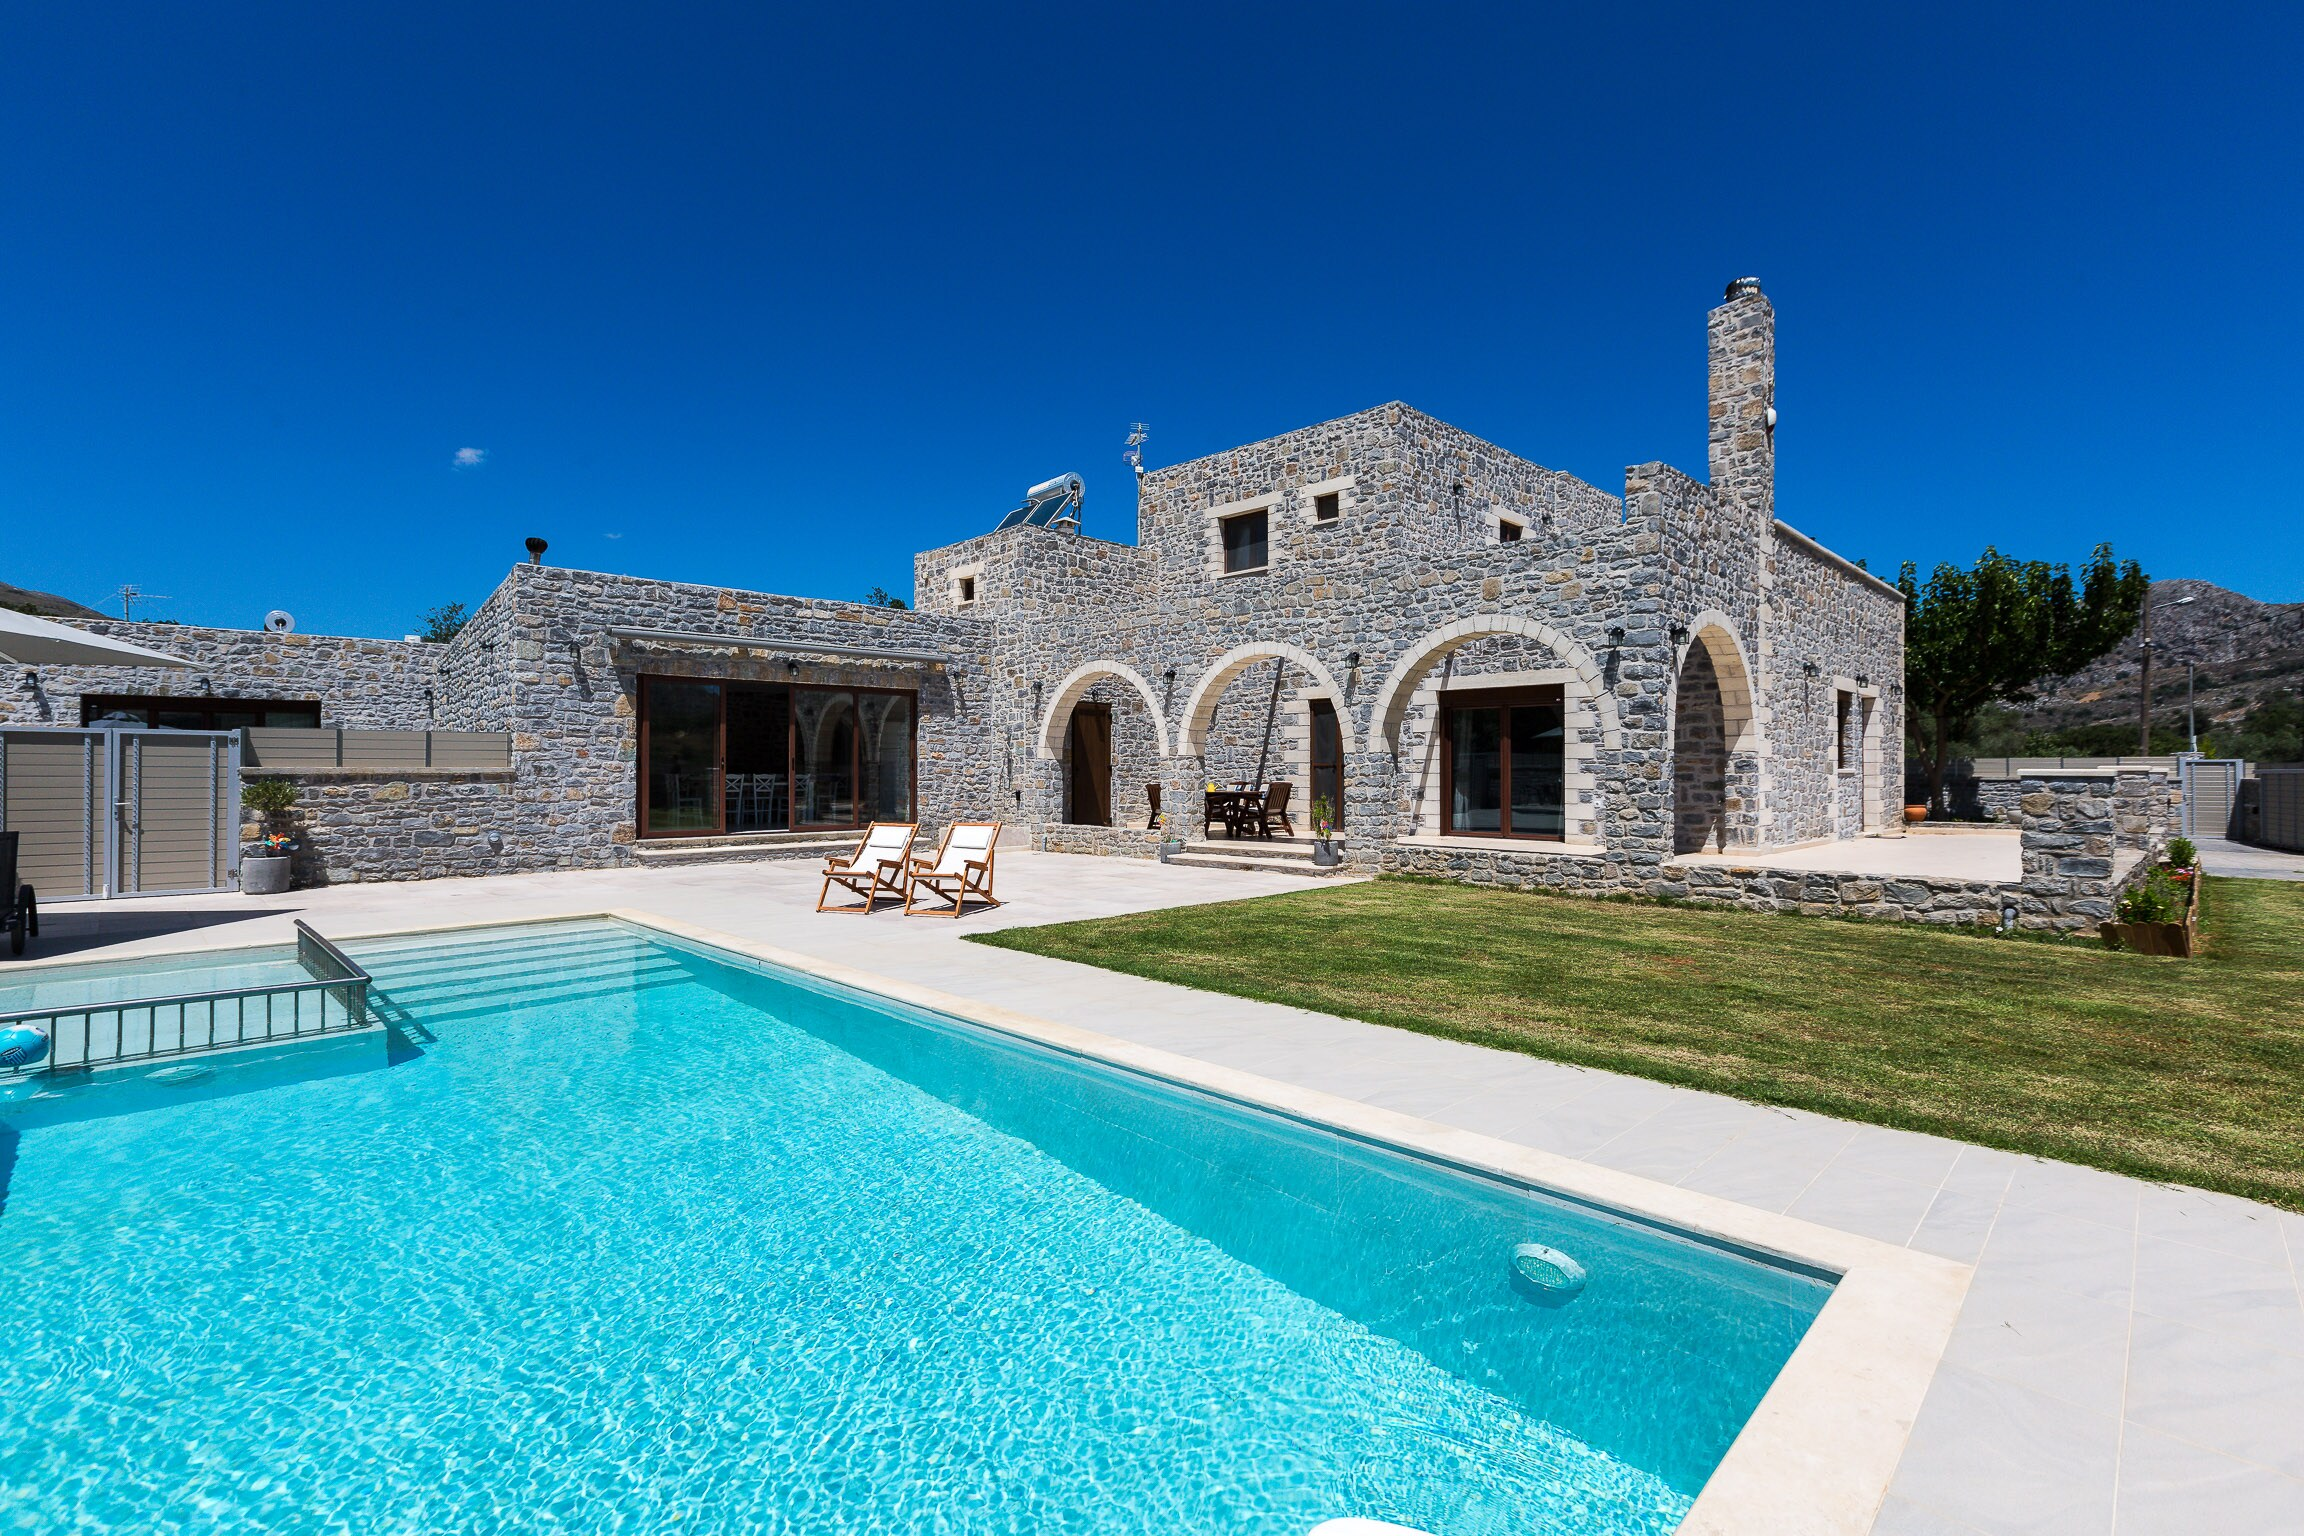 Idyllic Hideaway Villa with 40m2 Pool & Celestial Natural Views